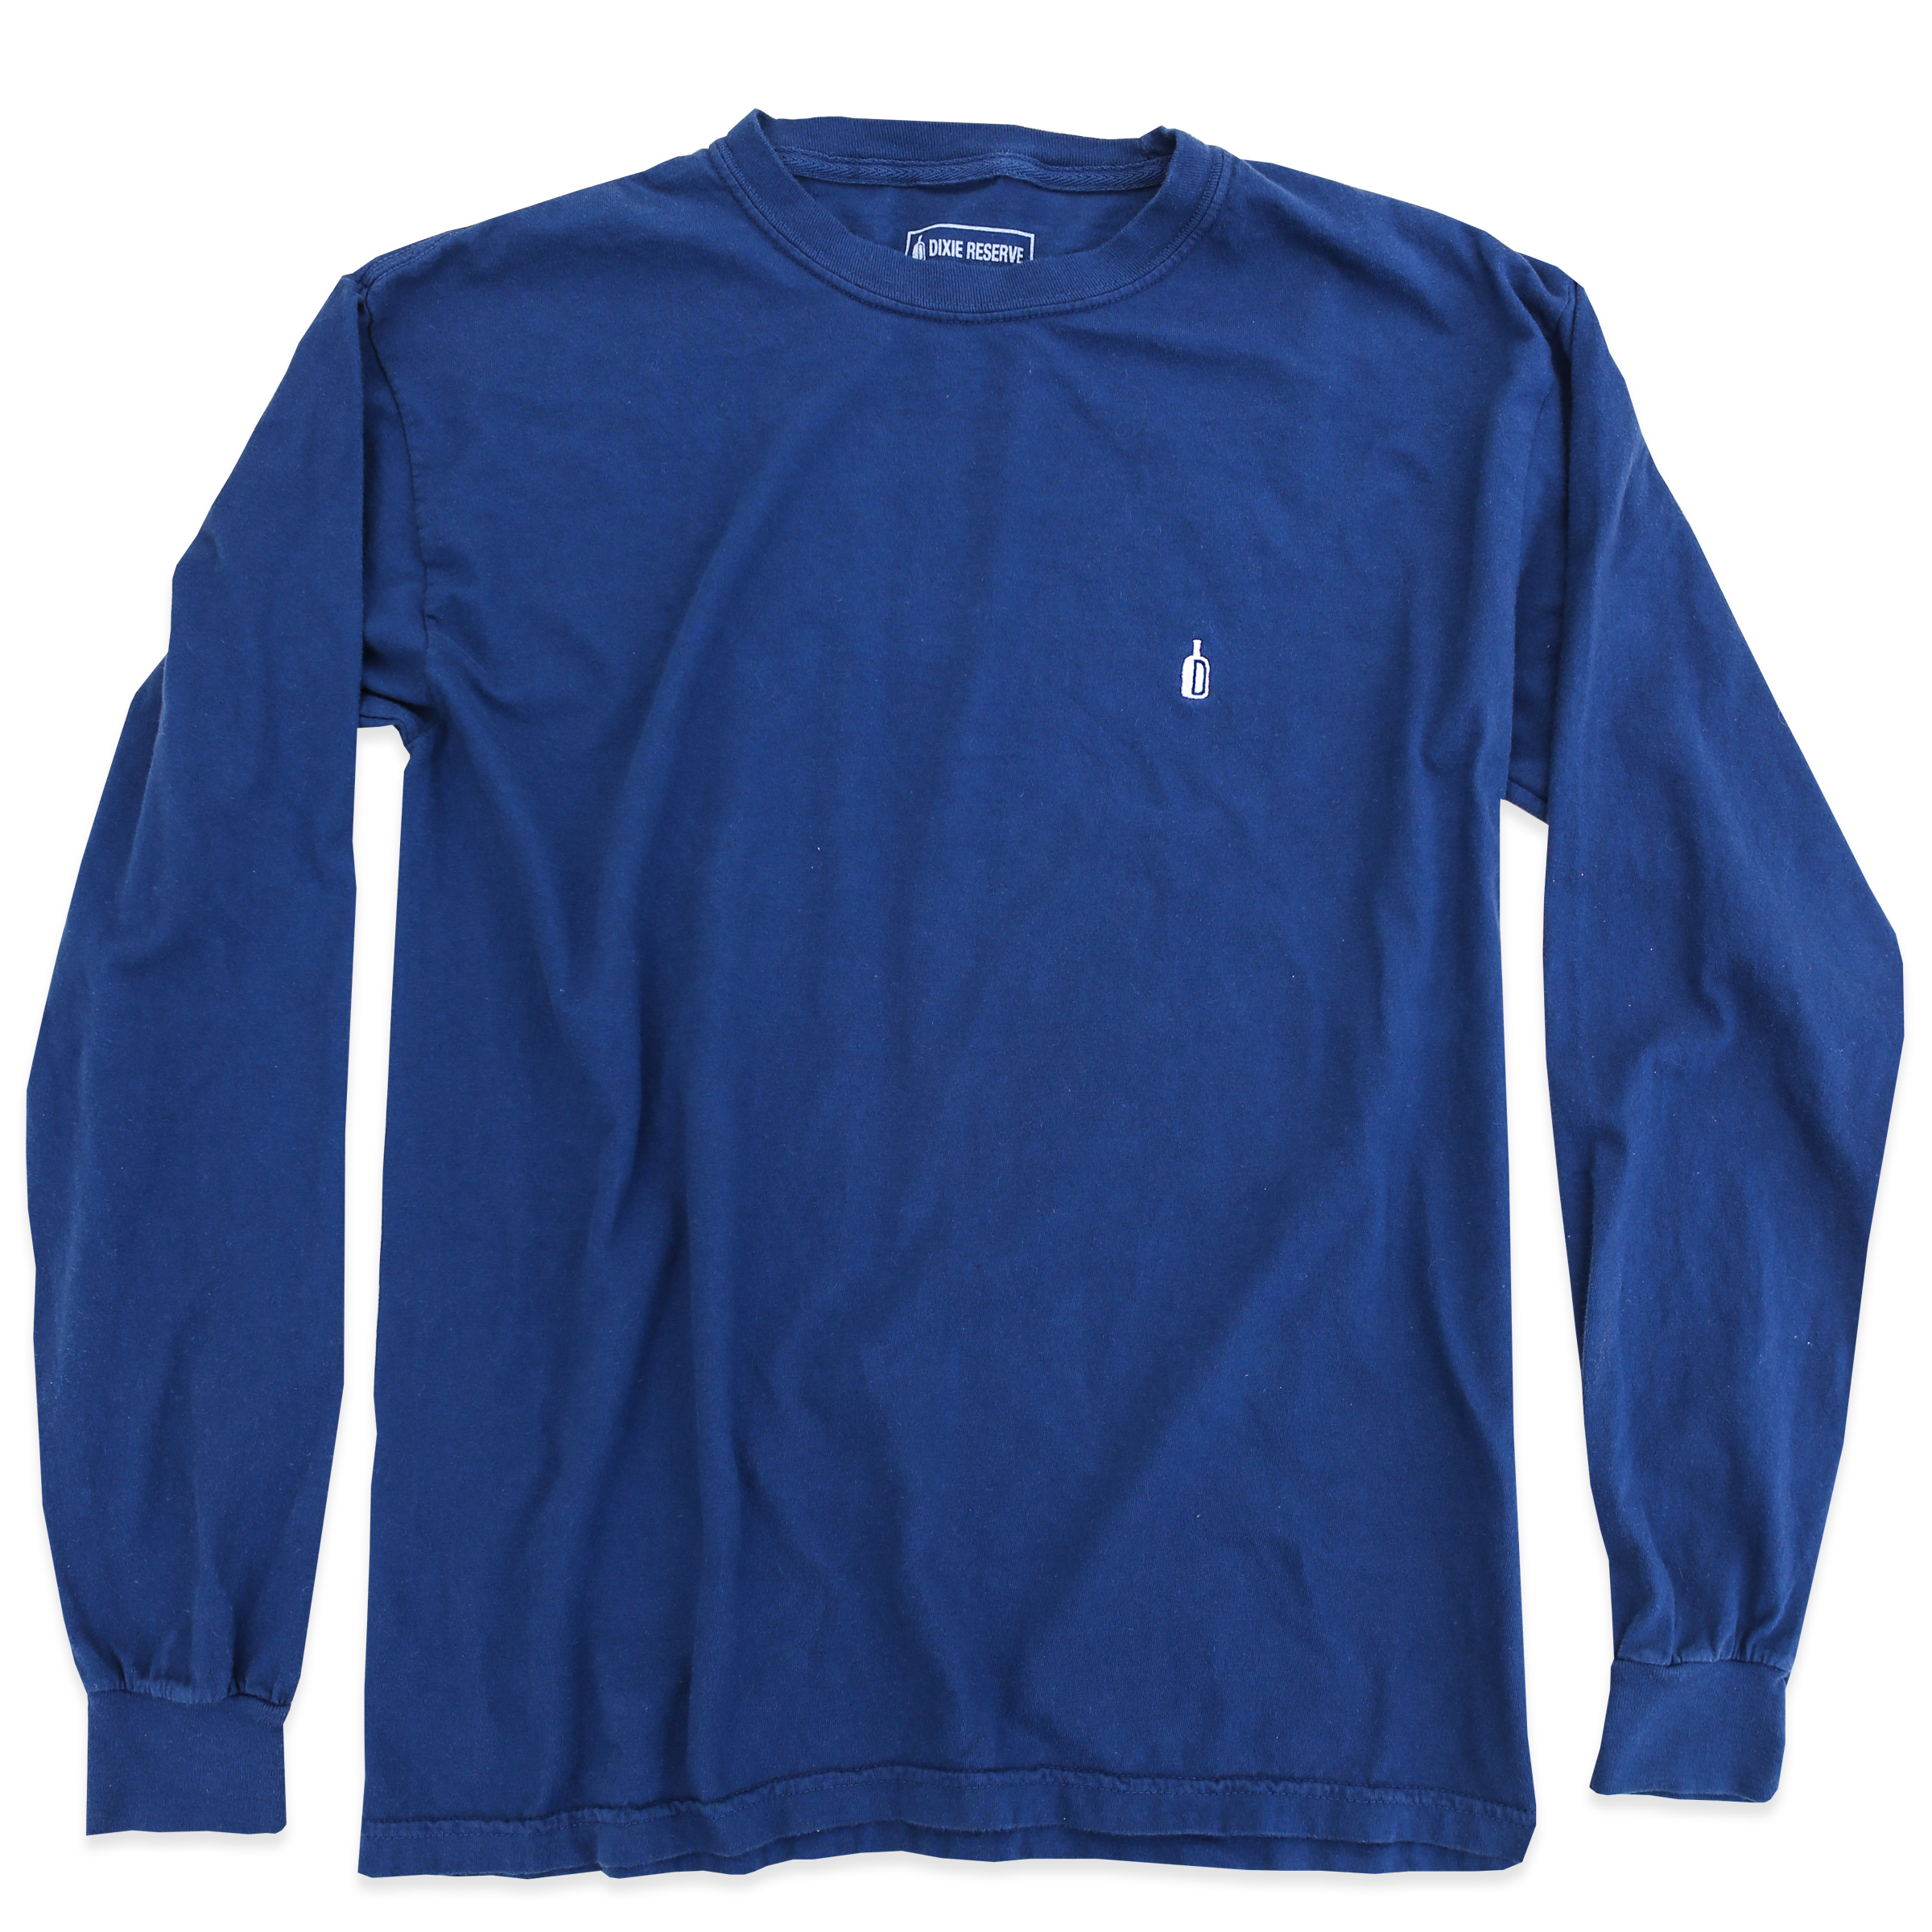 DIXIE RESERVE 90 PROOF LONGSLEEVE LS TEE NAVY BOURBON WHISKEY